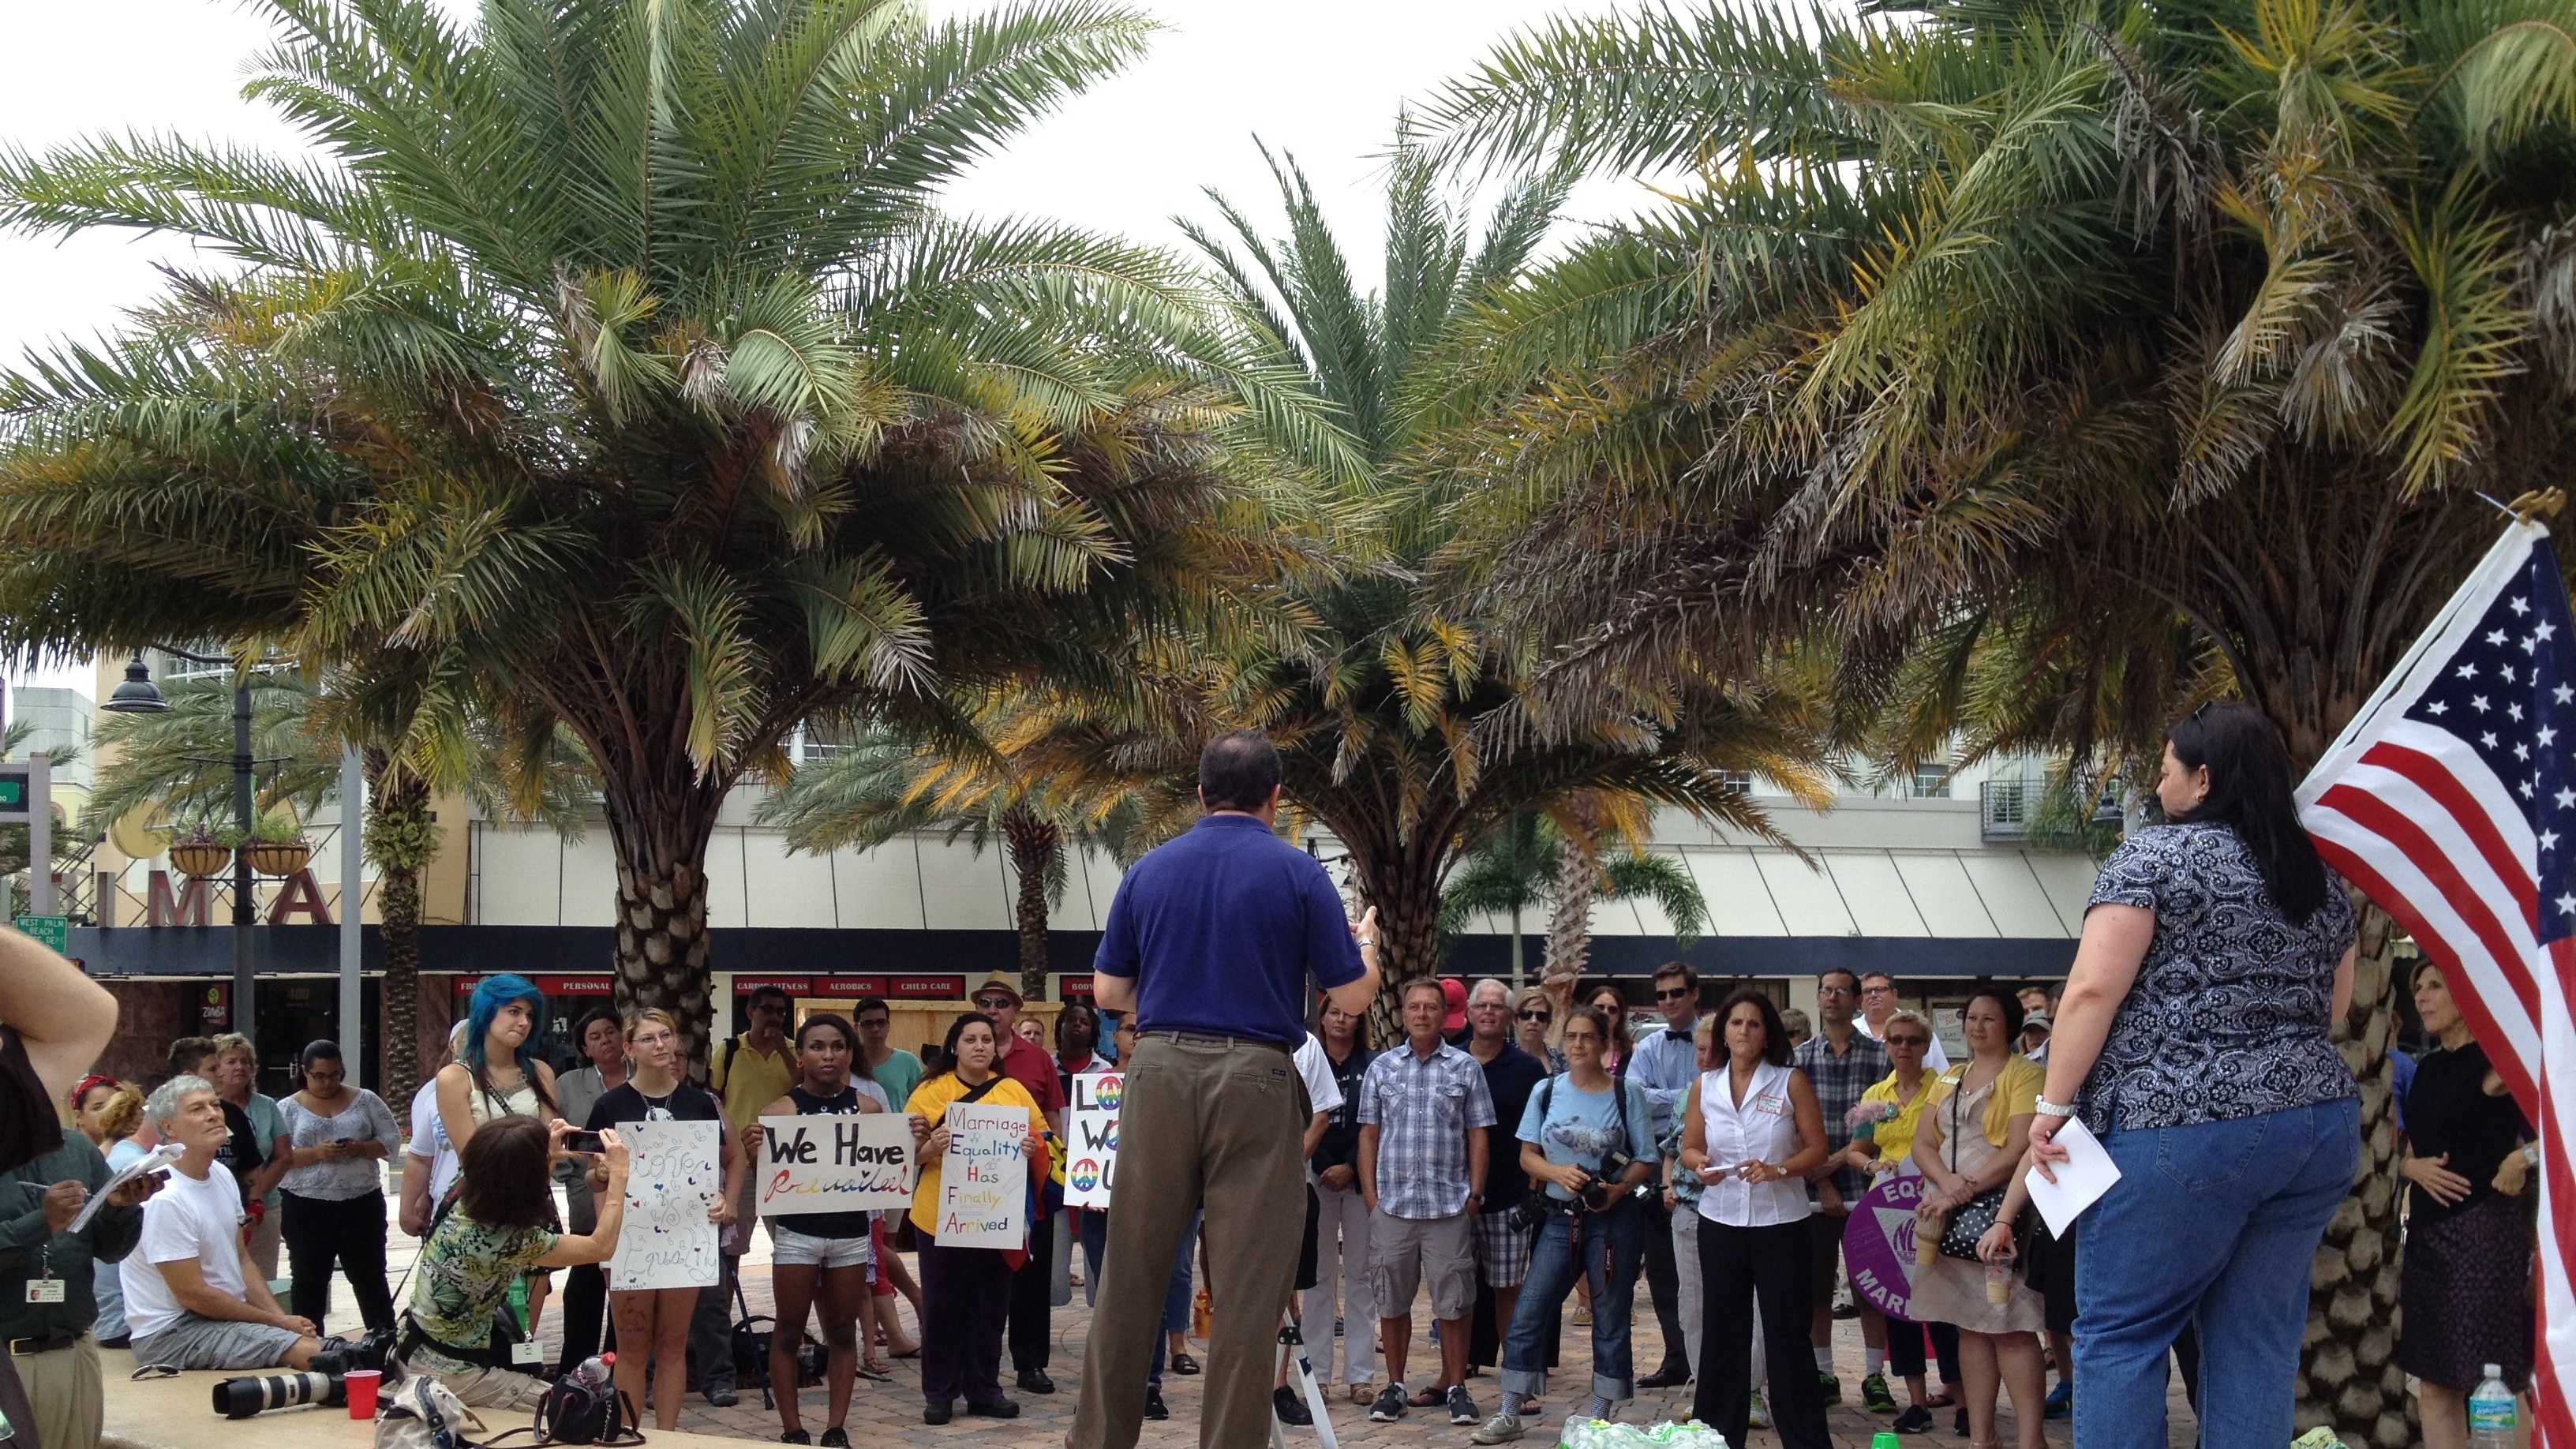 Same-sex marriage rally in WPB